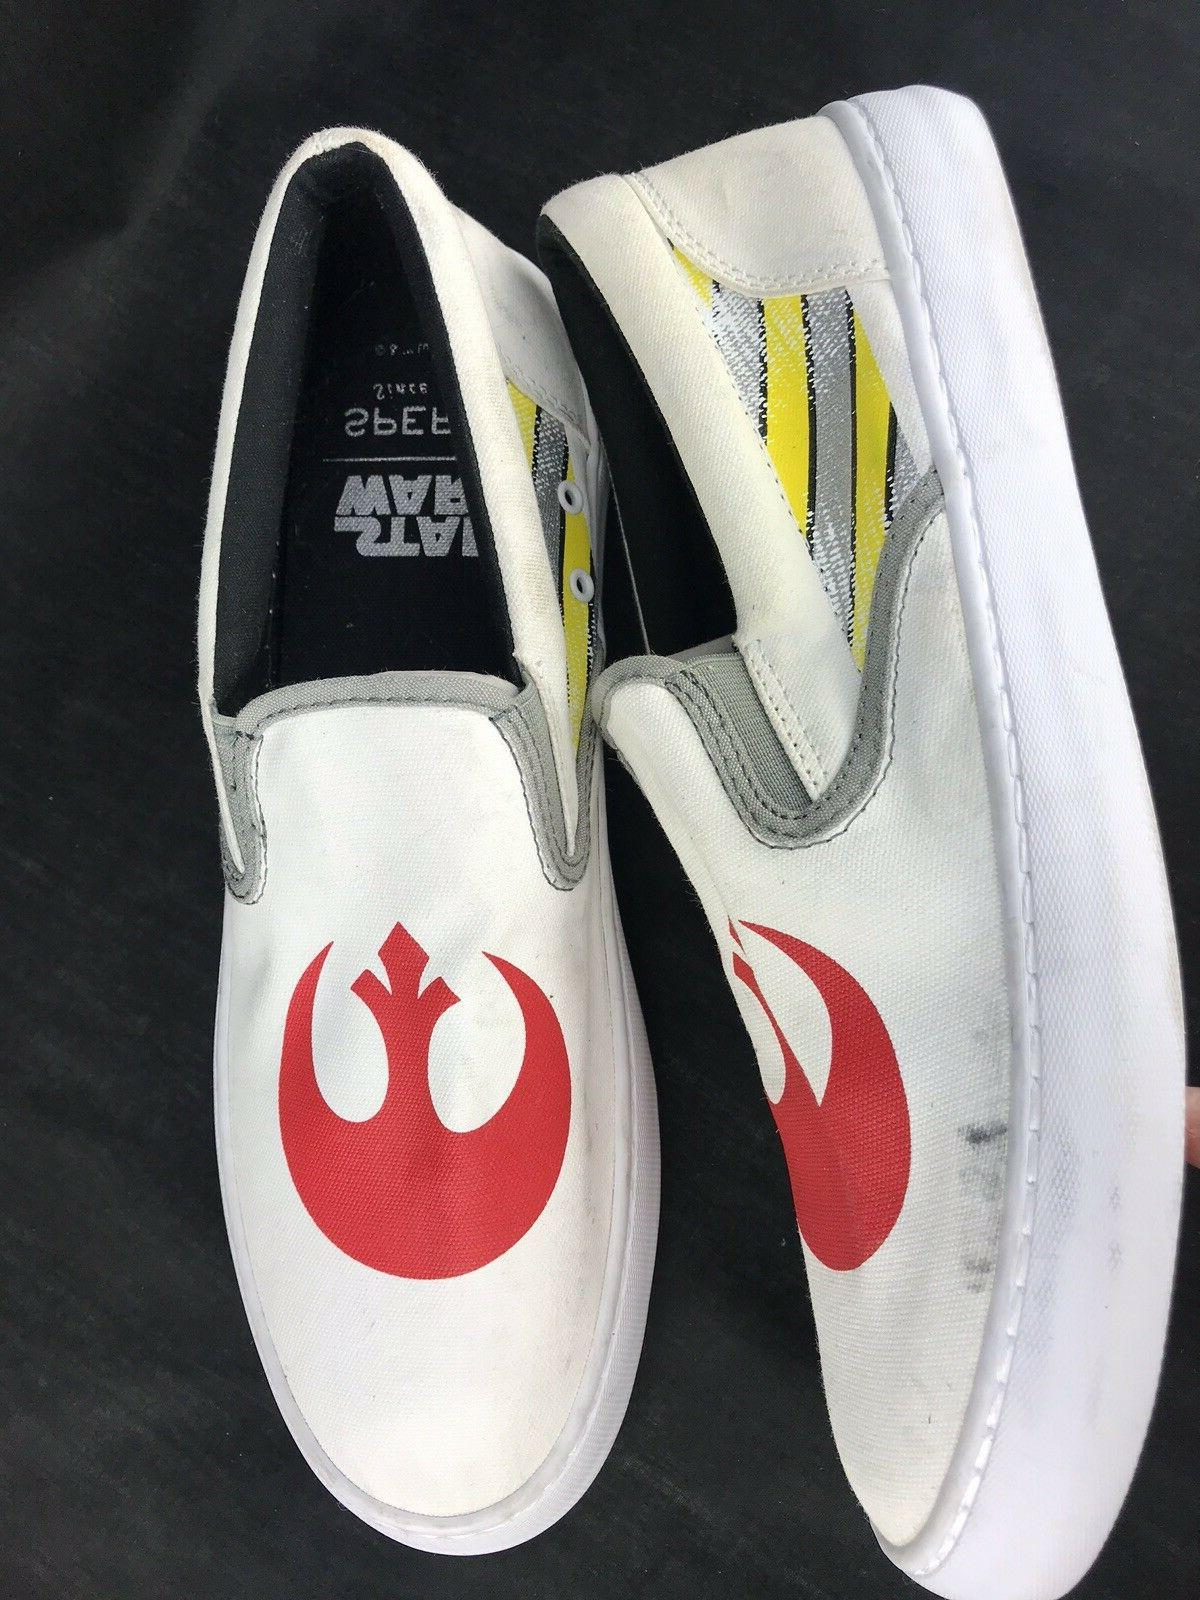 Sperry Boat Shoes 10 Star Wars Canvas Loafers